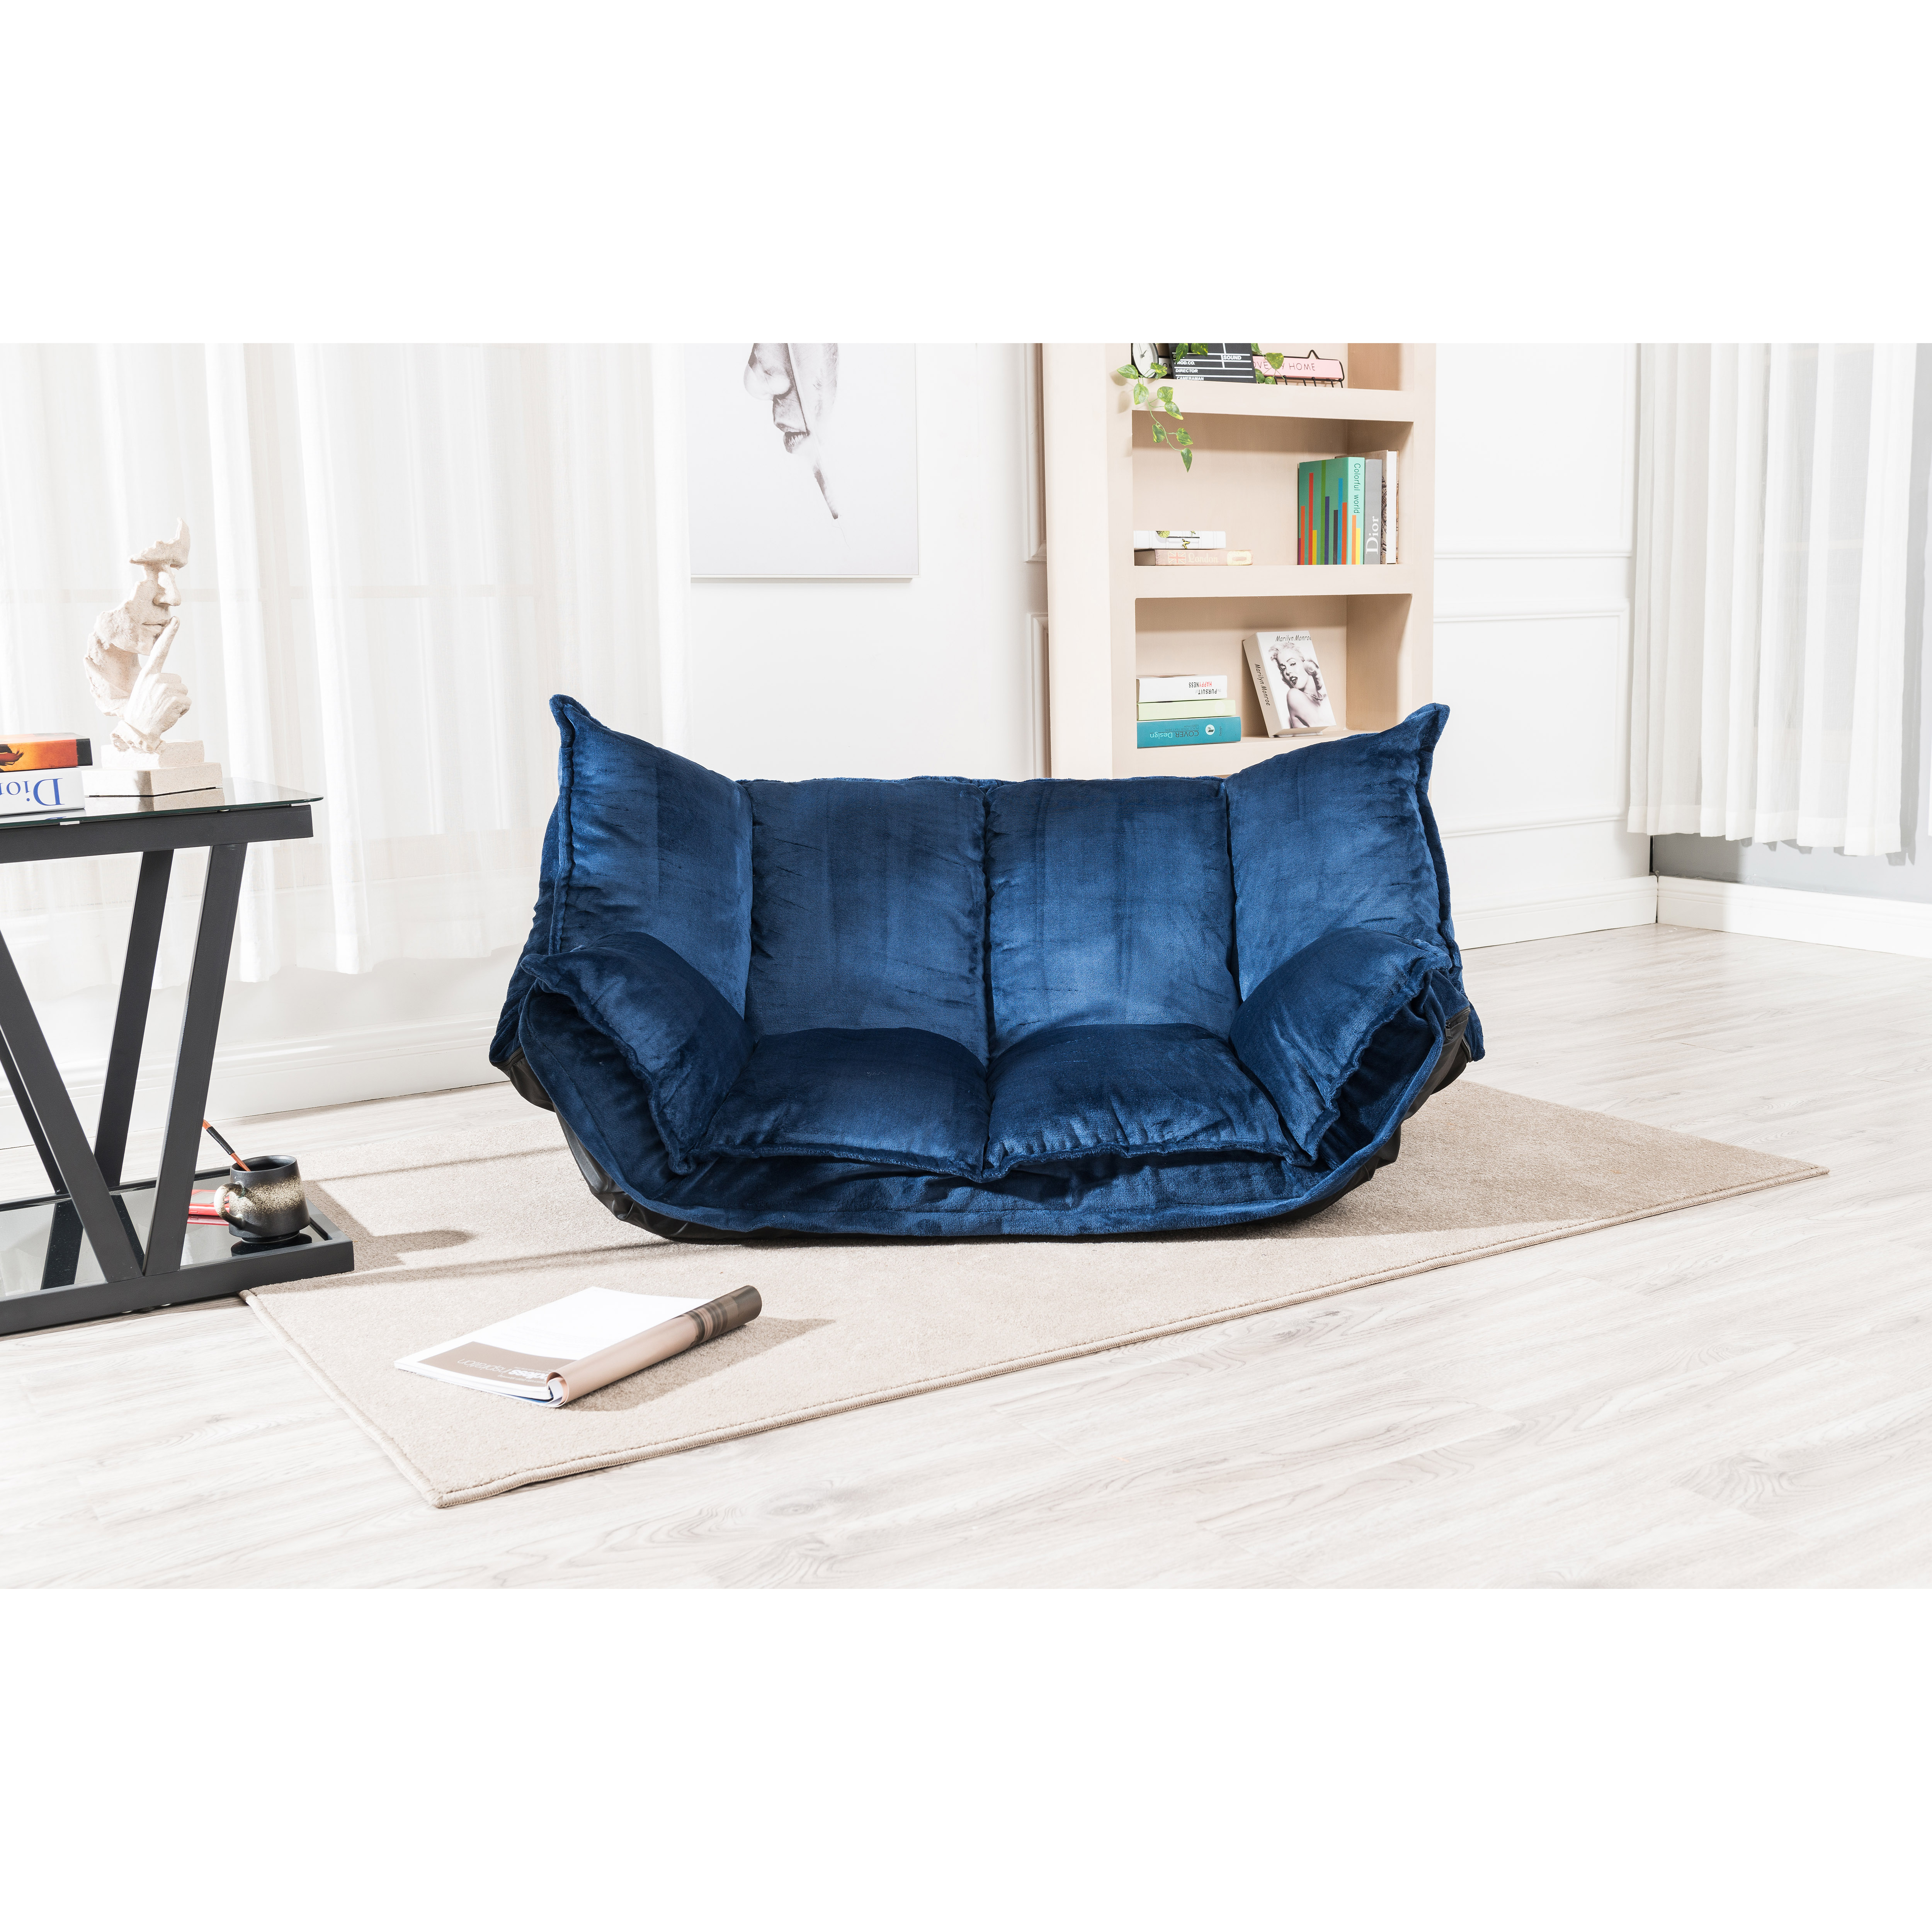 Picture of: Carlford Oem Velvet Japan Style Sofa Bed Living Room Sofa Bed Japanese Sofa Bed Floor Sofa Bed Wholesale Buy Fabric Sofa Bed Lazy Sofa Bed Sofa Bed Product On Alibaba Com